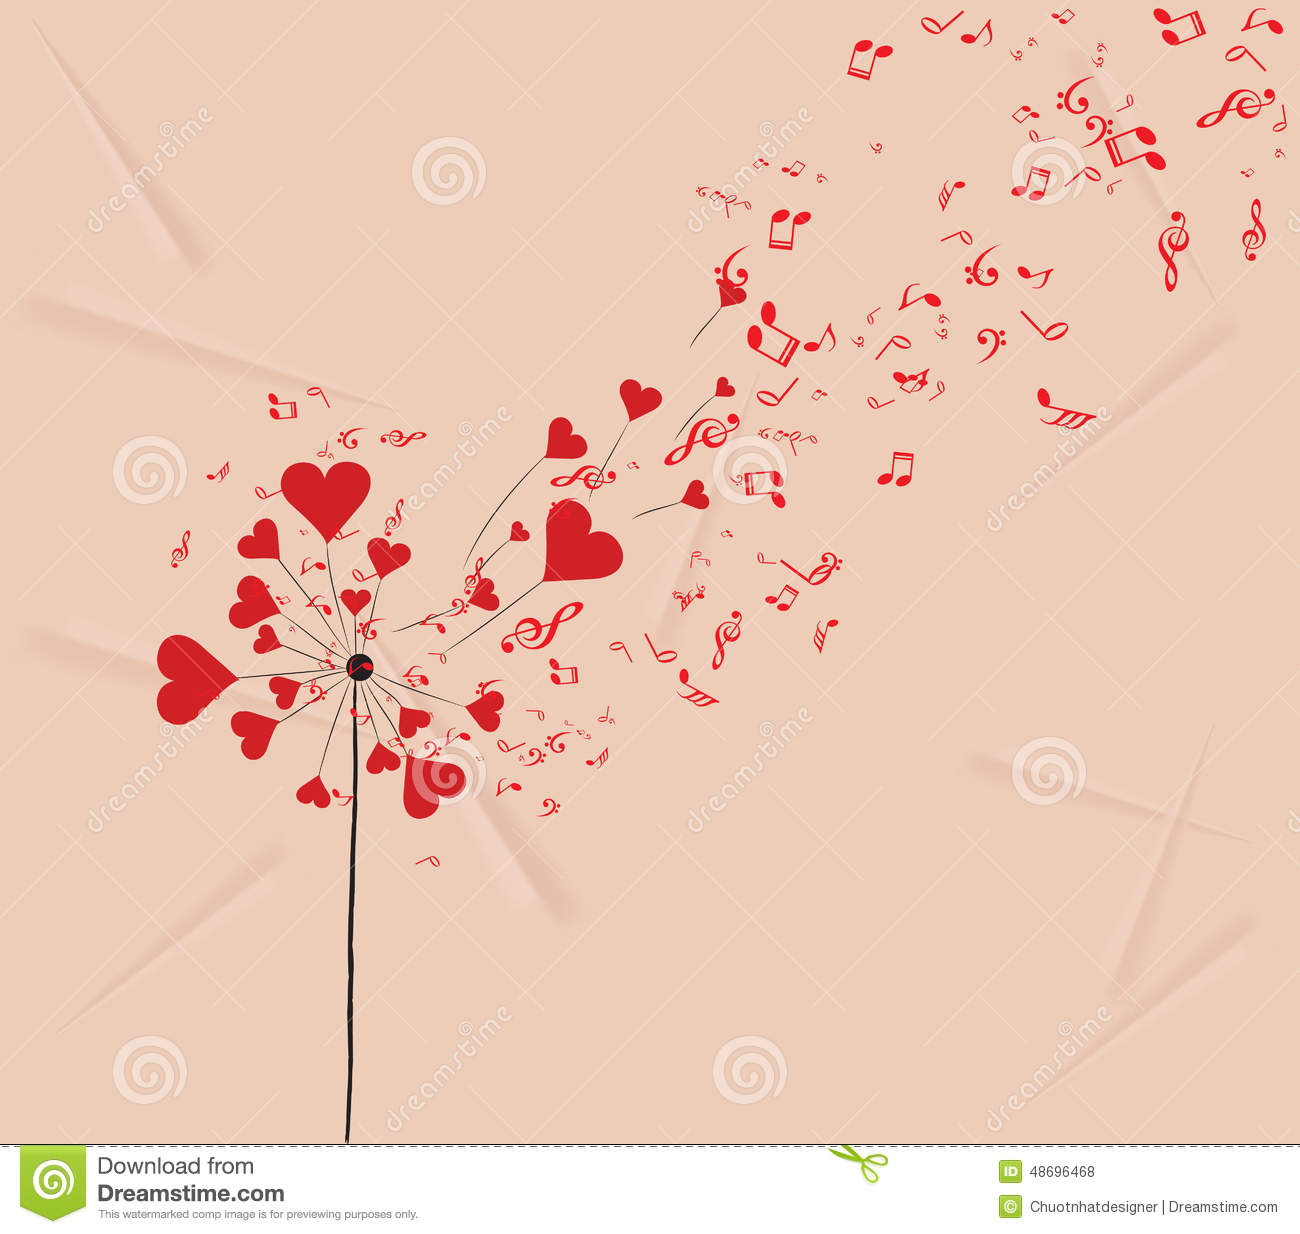 dandelions hearts and music valentines romantic background listening to music clipart black and white someone listening to music clipart